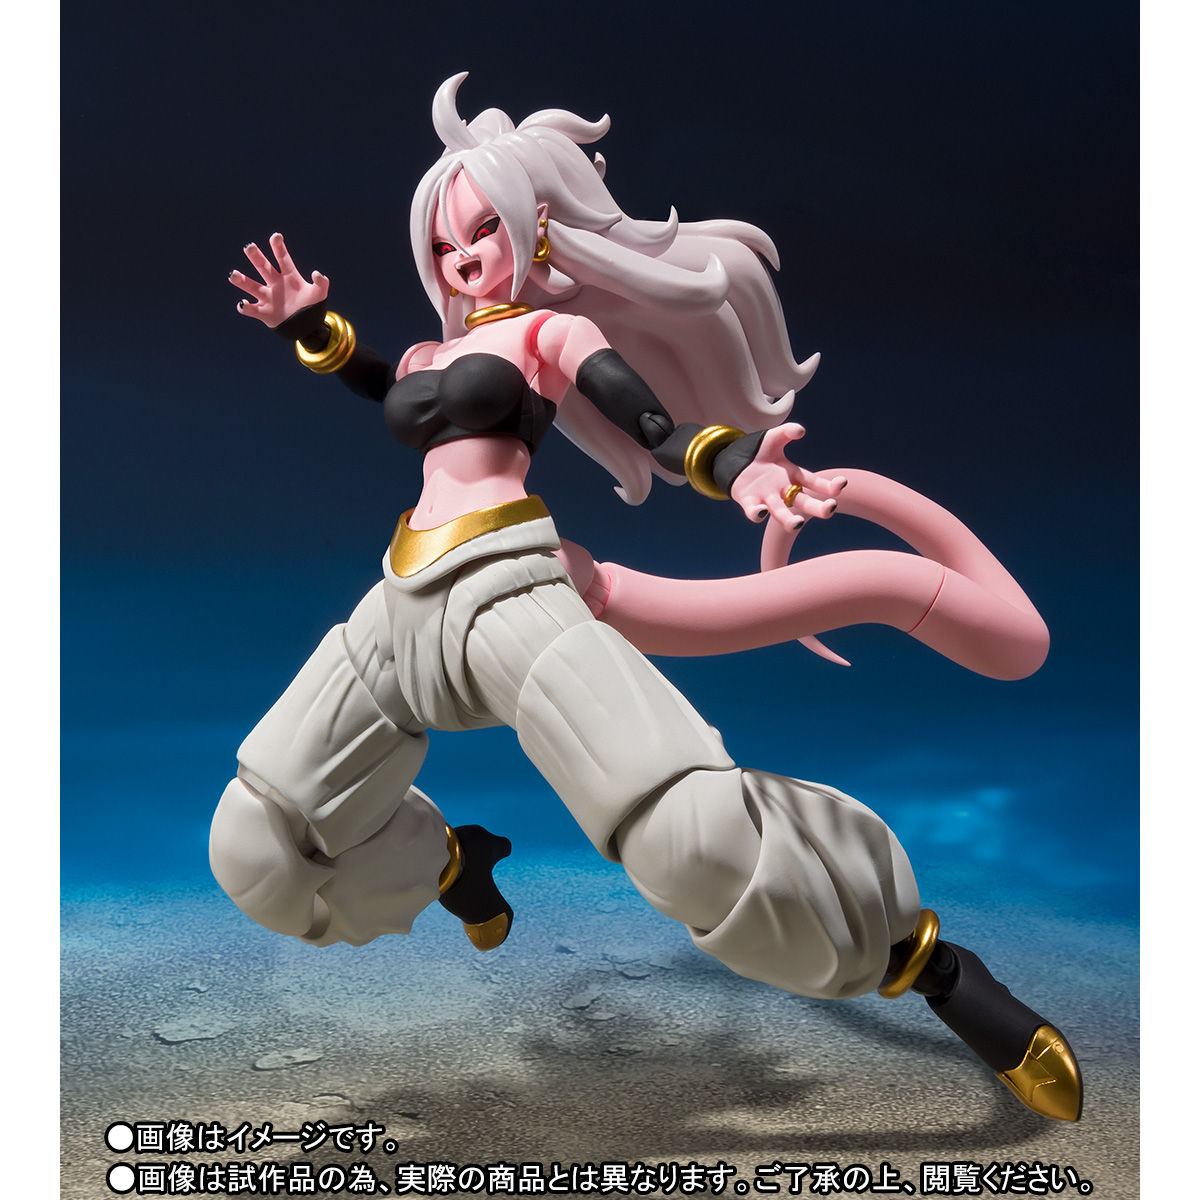 Dragon Ball Android 21: SH Figuarts Android 21 From Dragon Ball FighterZ